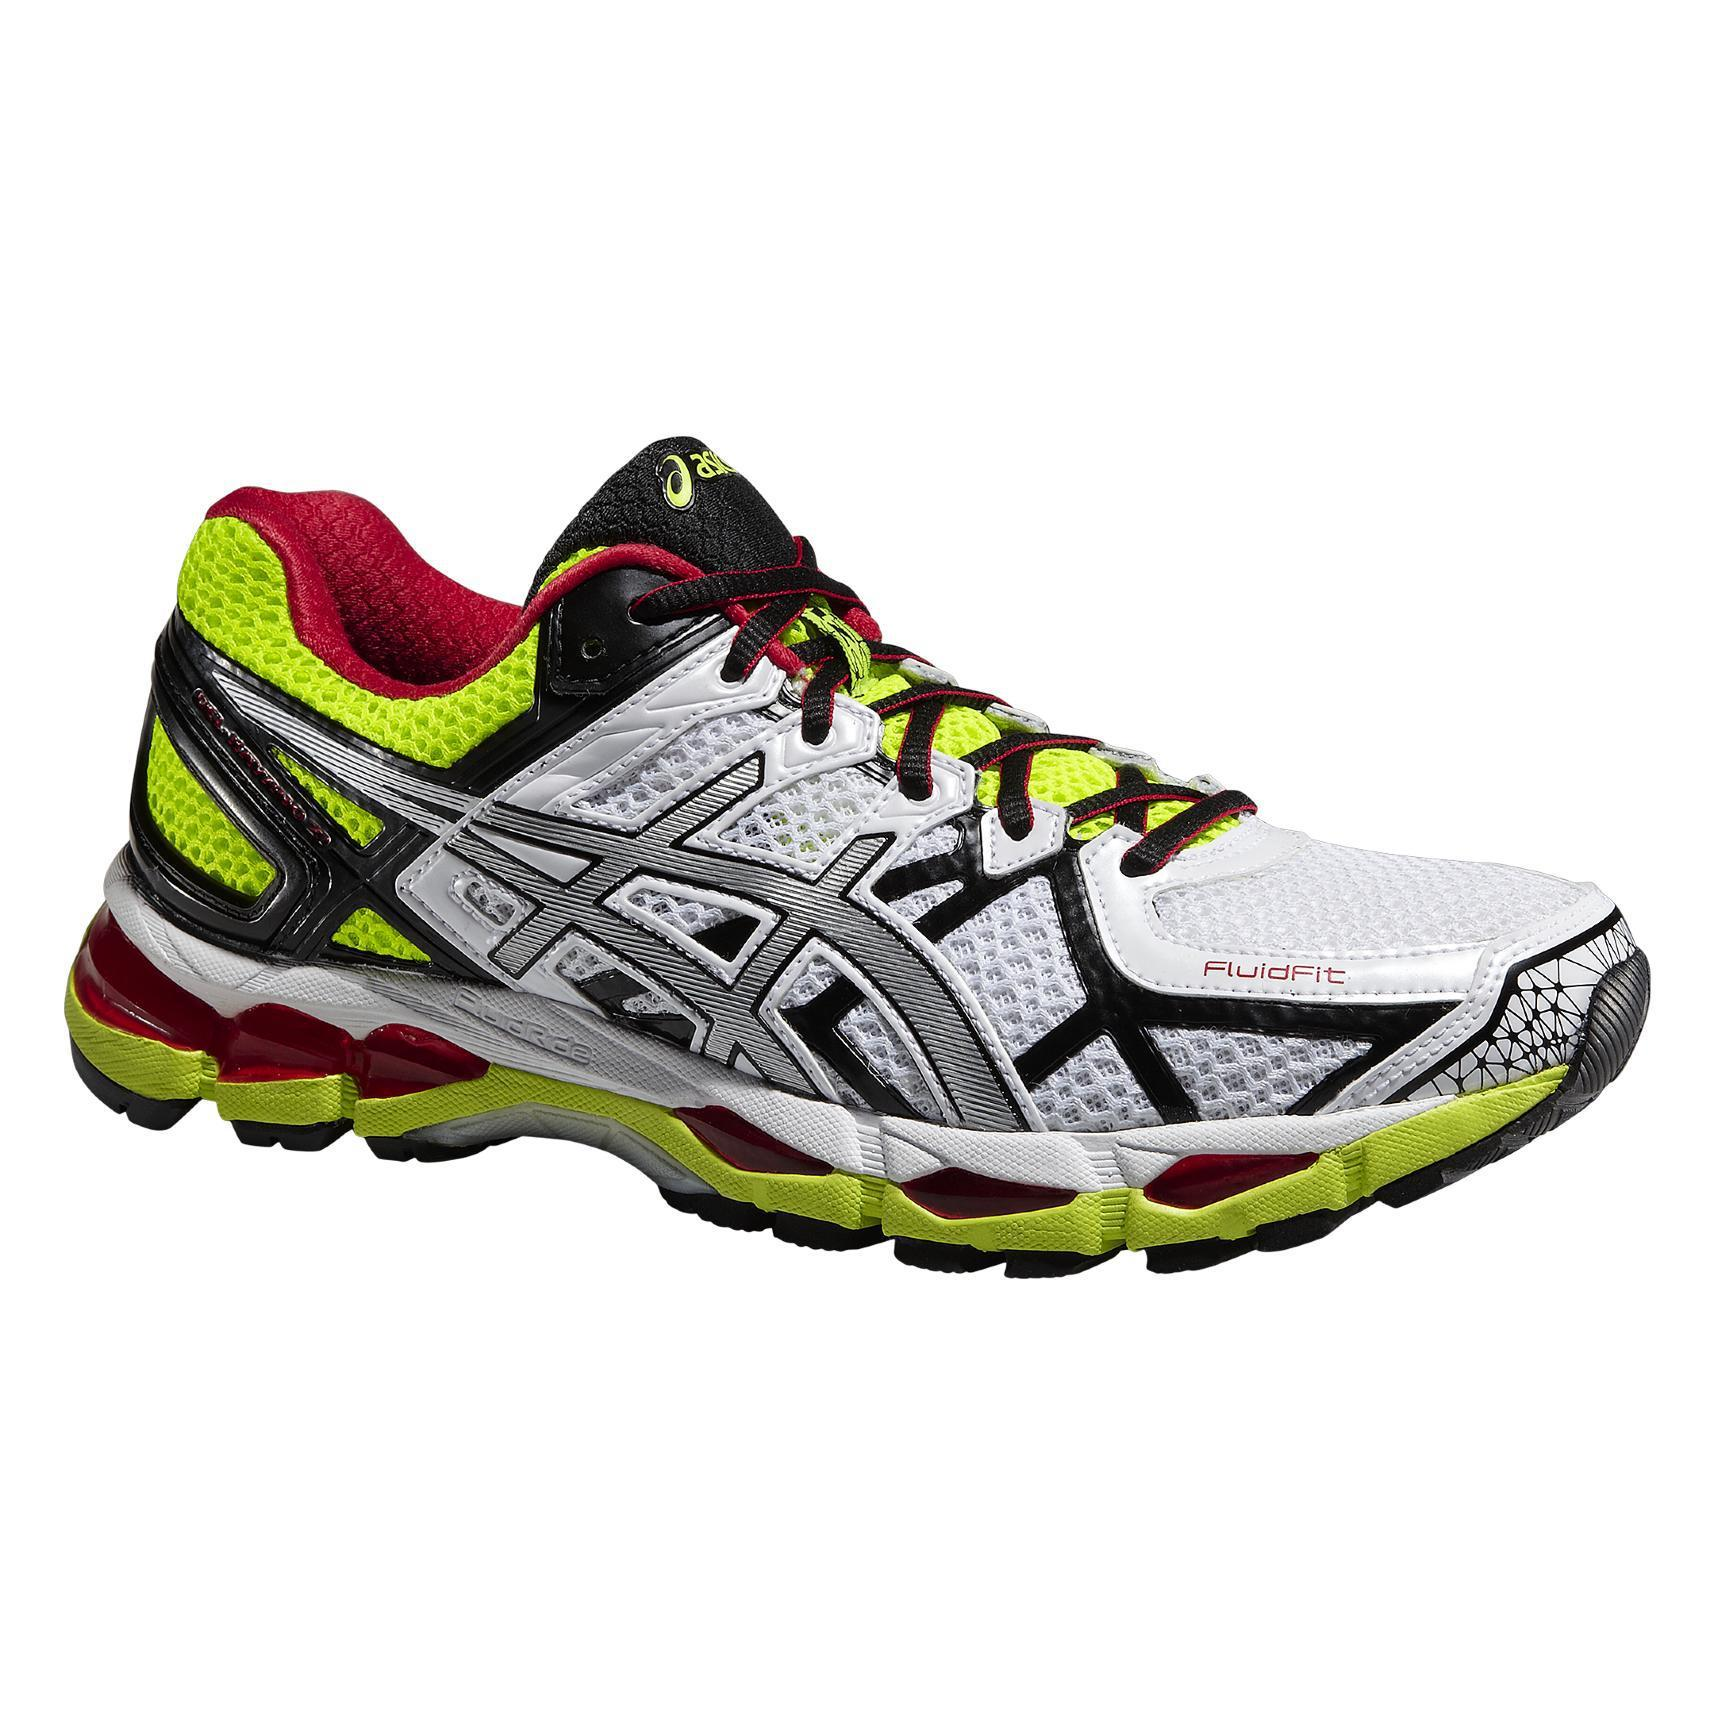 new style 84009 d343d Asics Mens GEL-Kayano 21 Running Shoes - White Yellow - Tennisnuts.com